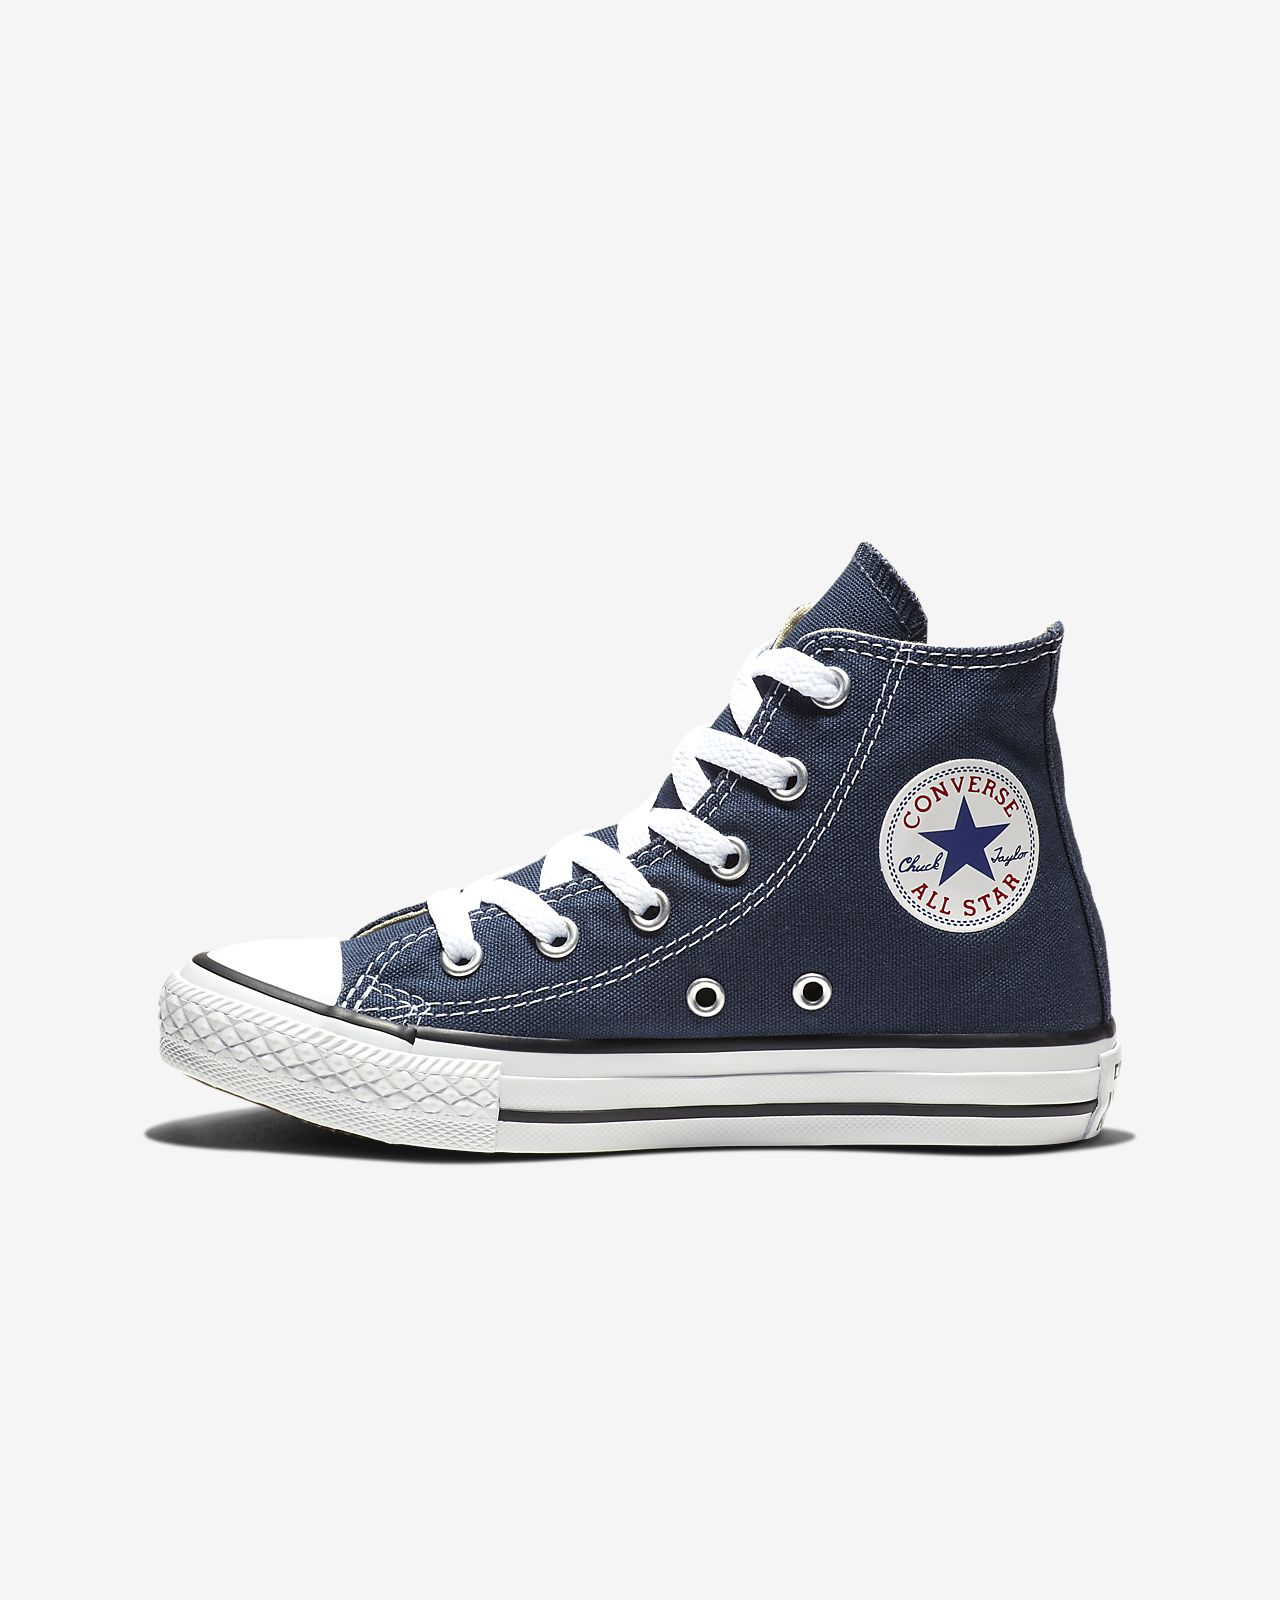 5b6fec8e1164 Converse Chuck Taylor All Star High Top (10.5c-3y) Little Kids  Shoe ...